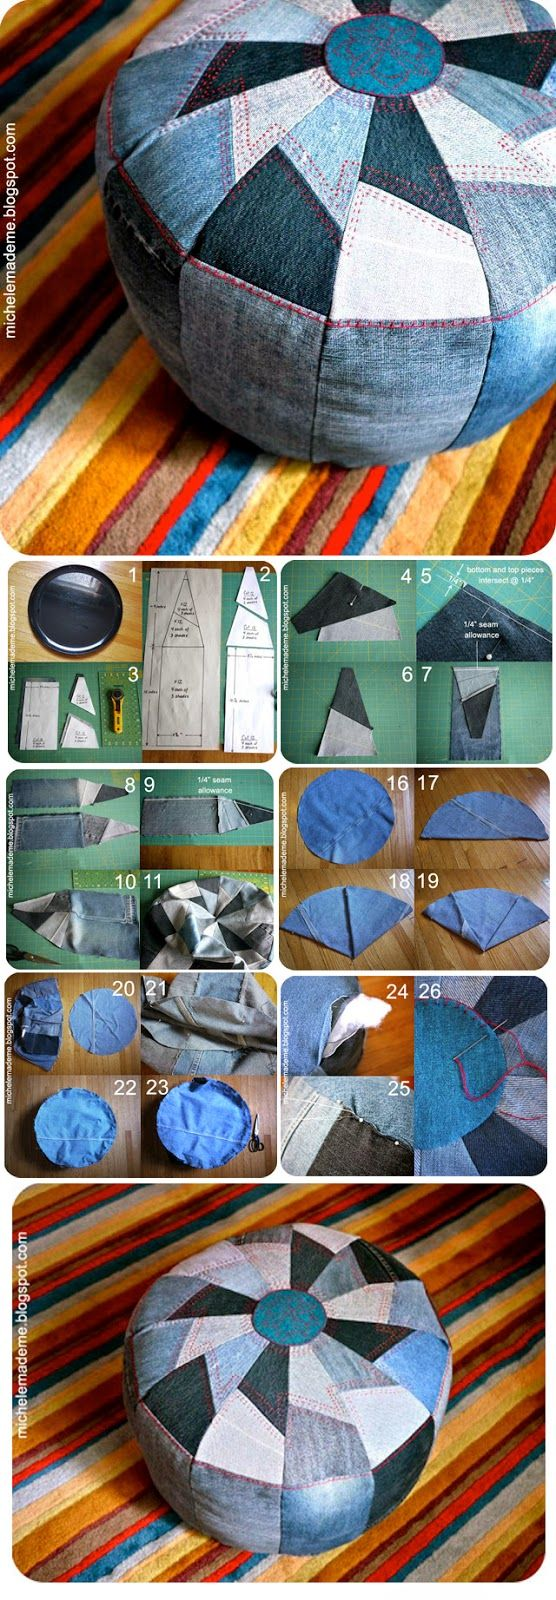 ABCDIY: 13 Ideas to Recycle Old Jeans into Useful Thing... The pouf caught my eye, but scroll down to the denim drink coasters: use up the jean SEAMS! Ingenious.                                                                                                                                                      More: